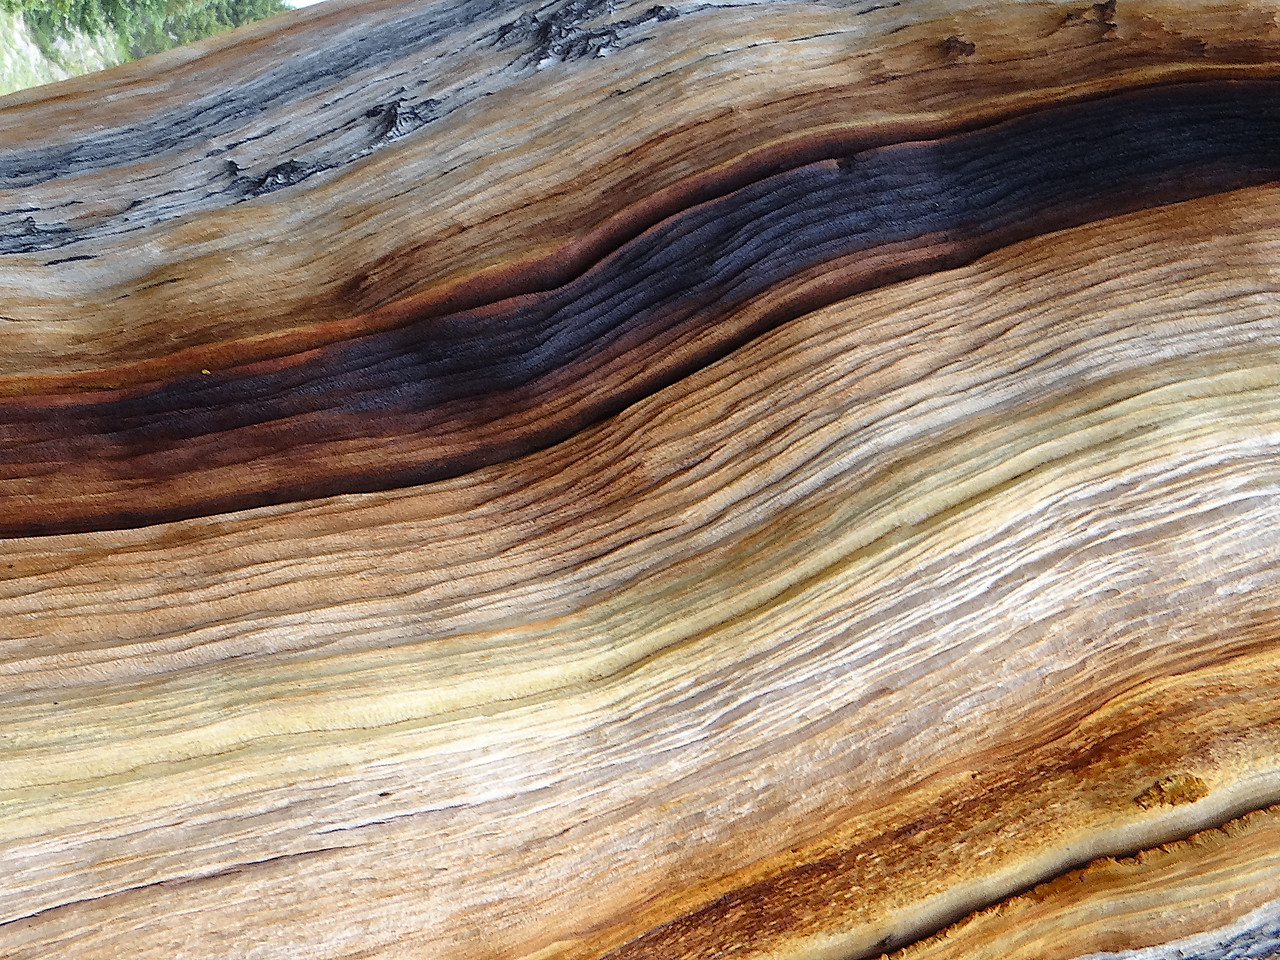 Spectrum of colors in an exposed Bristlecone Pine trunk